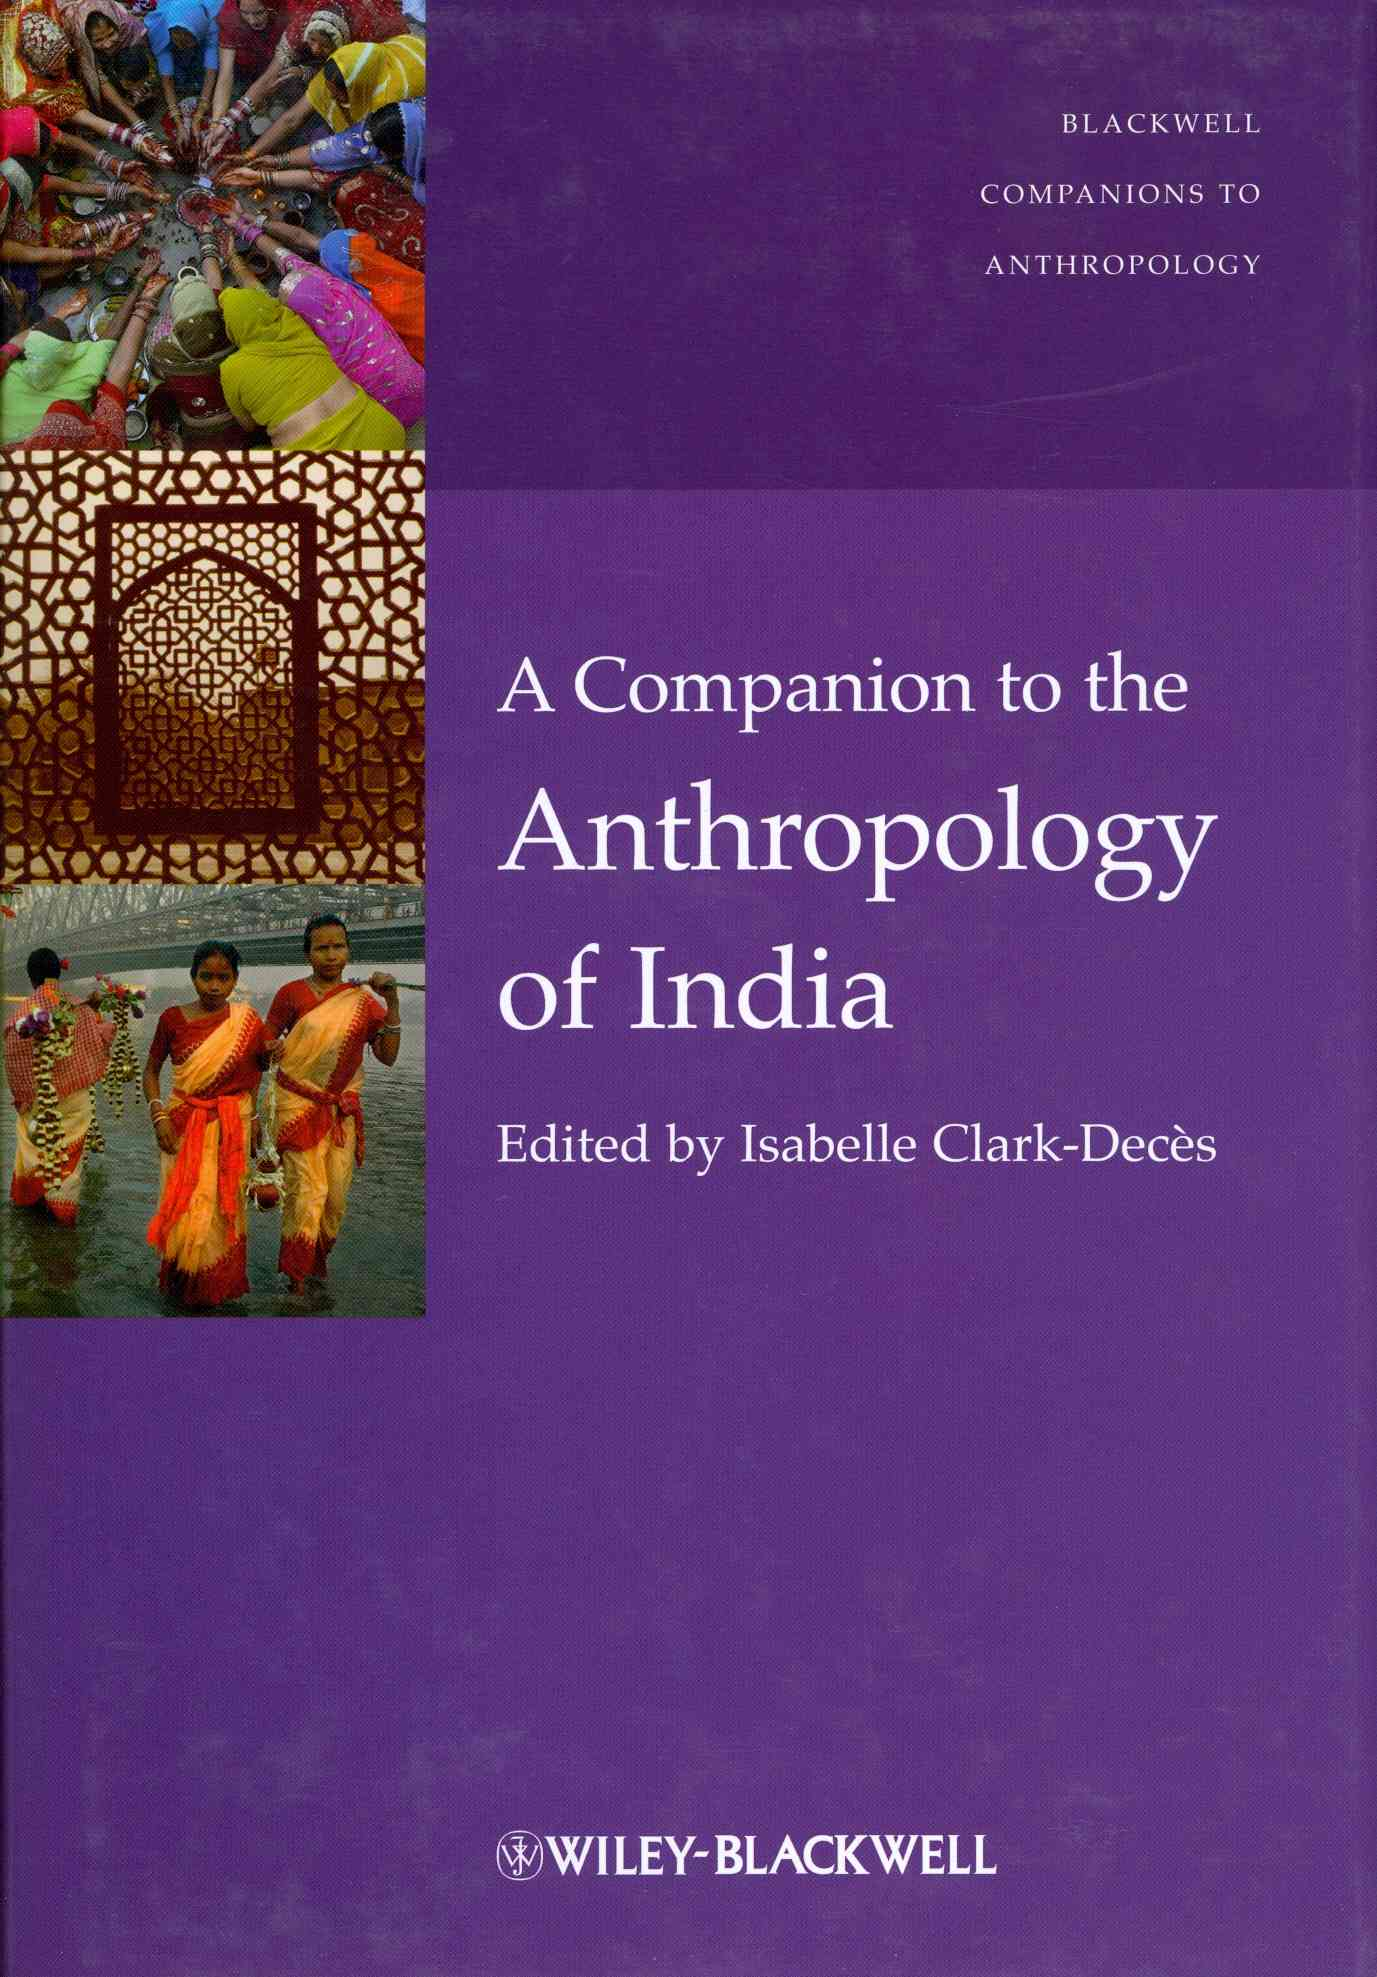 A Companion to the Anthropology of India (Hardcover)